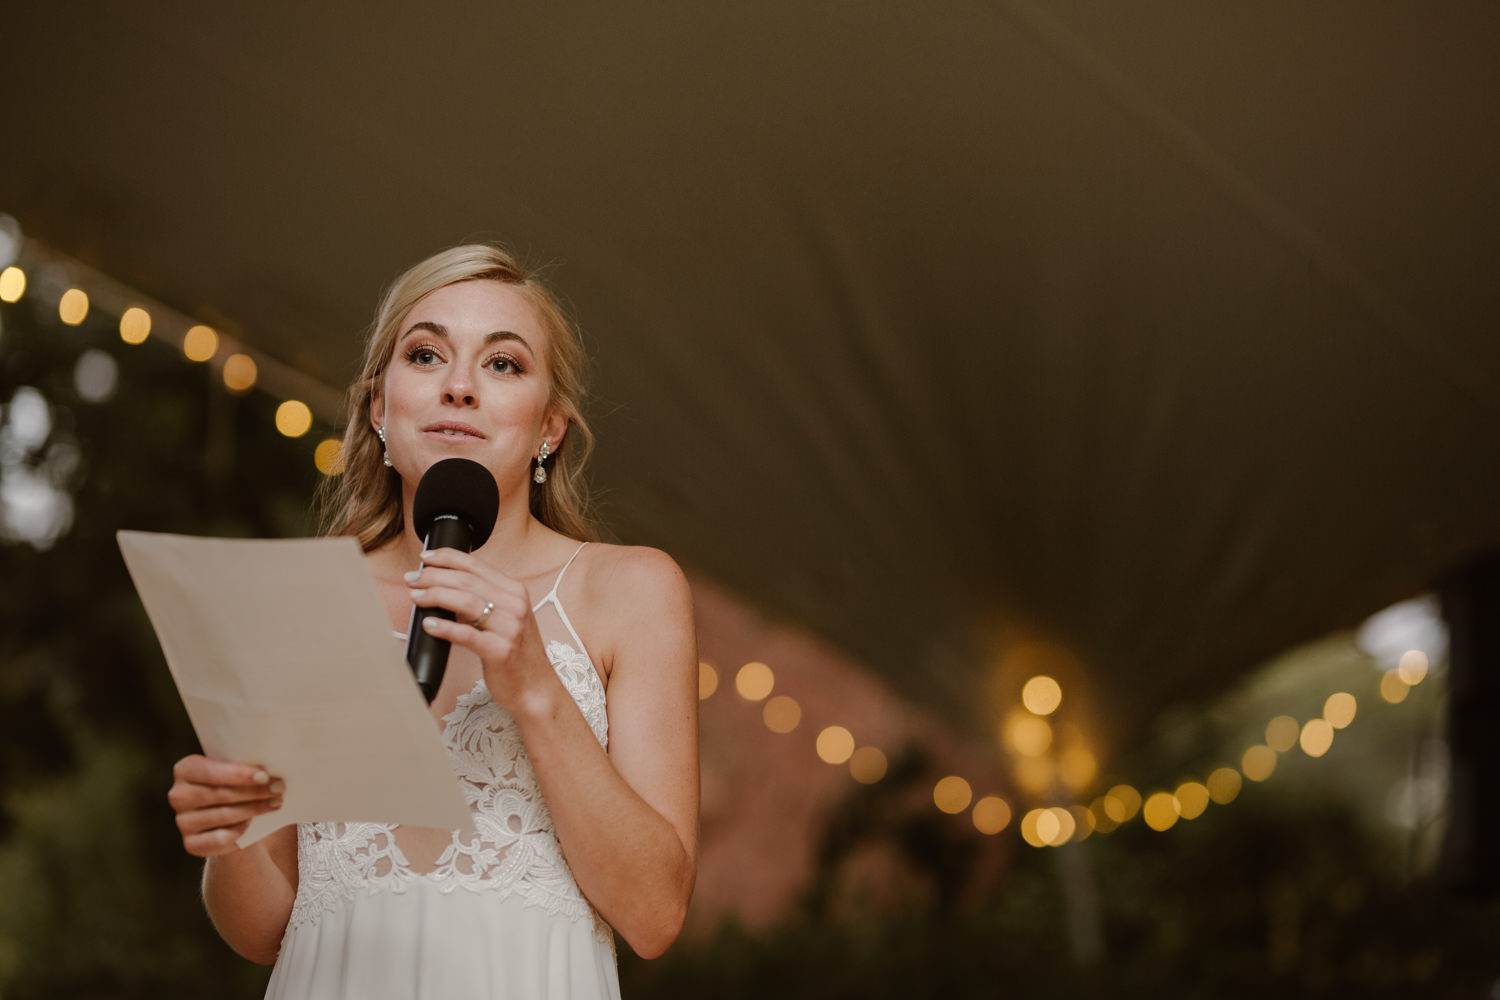 Blonde bride emotional while giving a speech on a clear sound system and microphone.